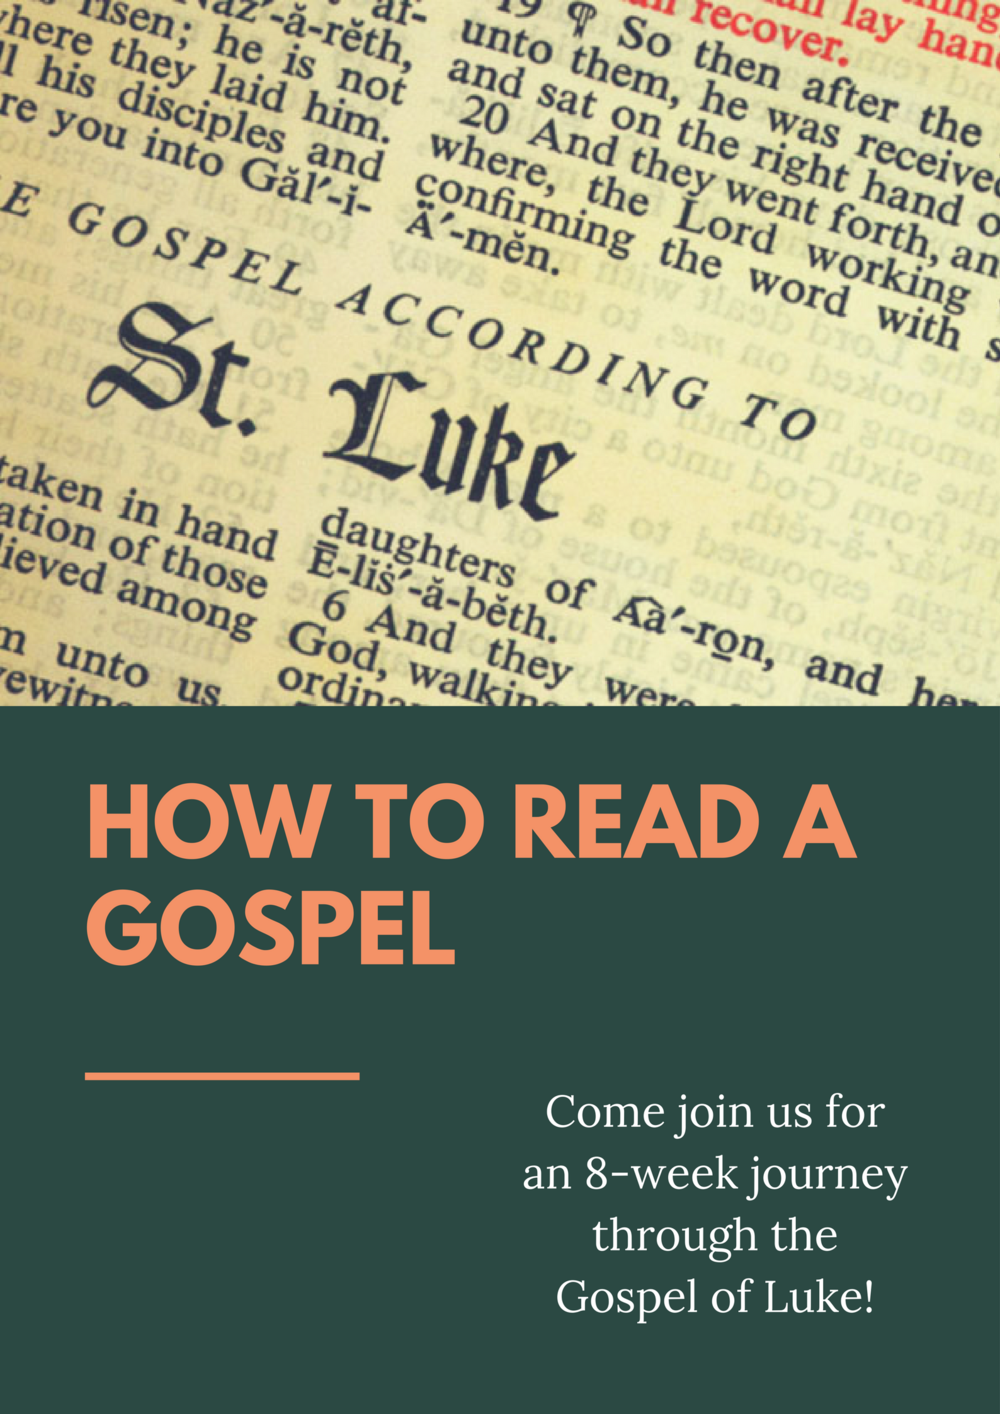 How to Read a Gospel